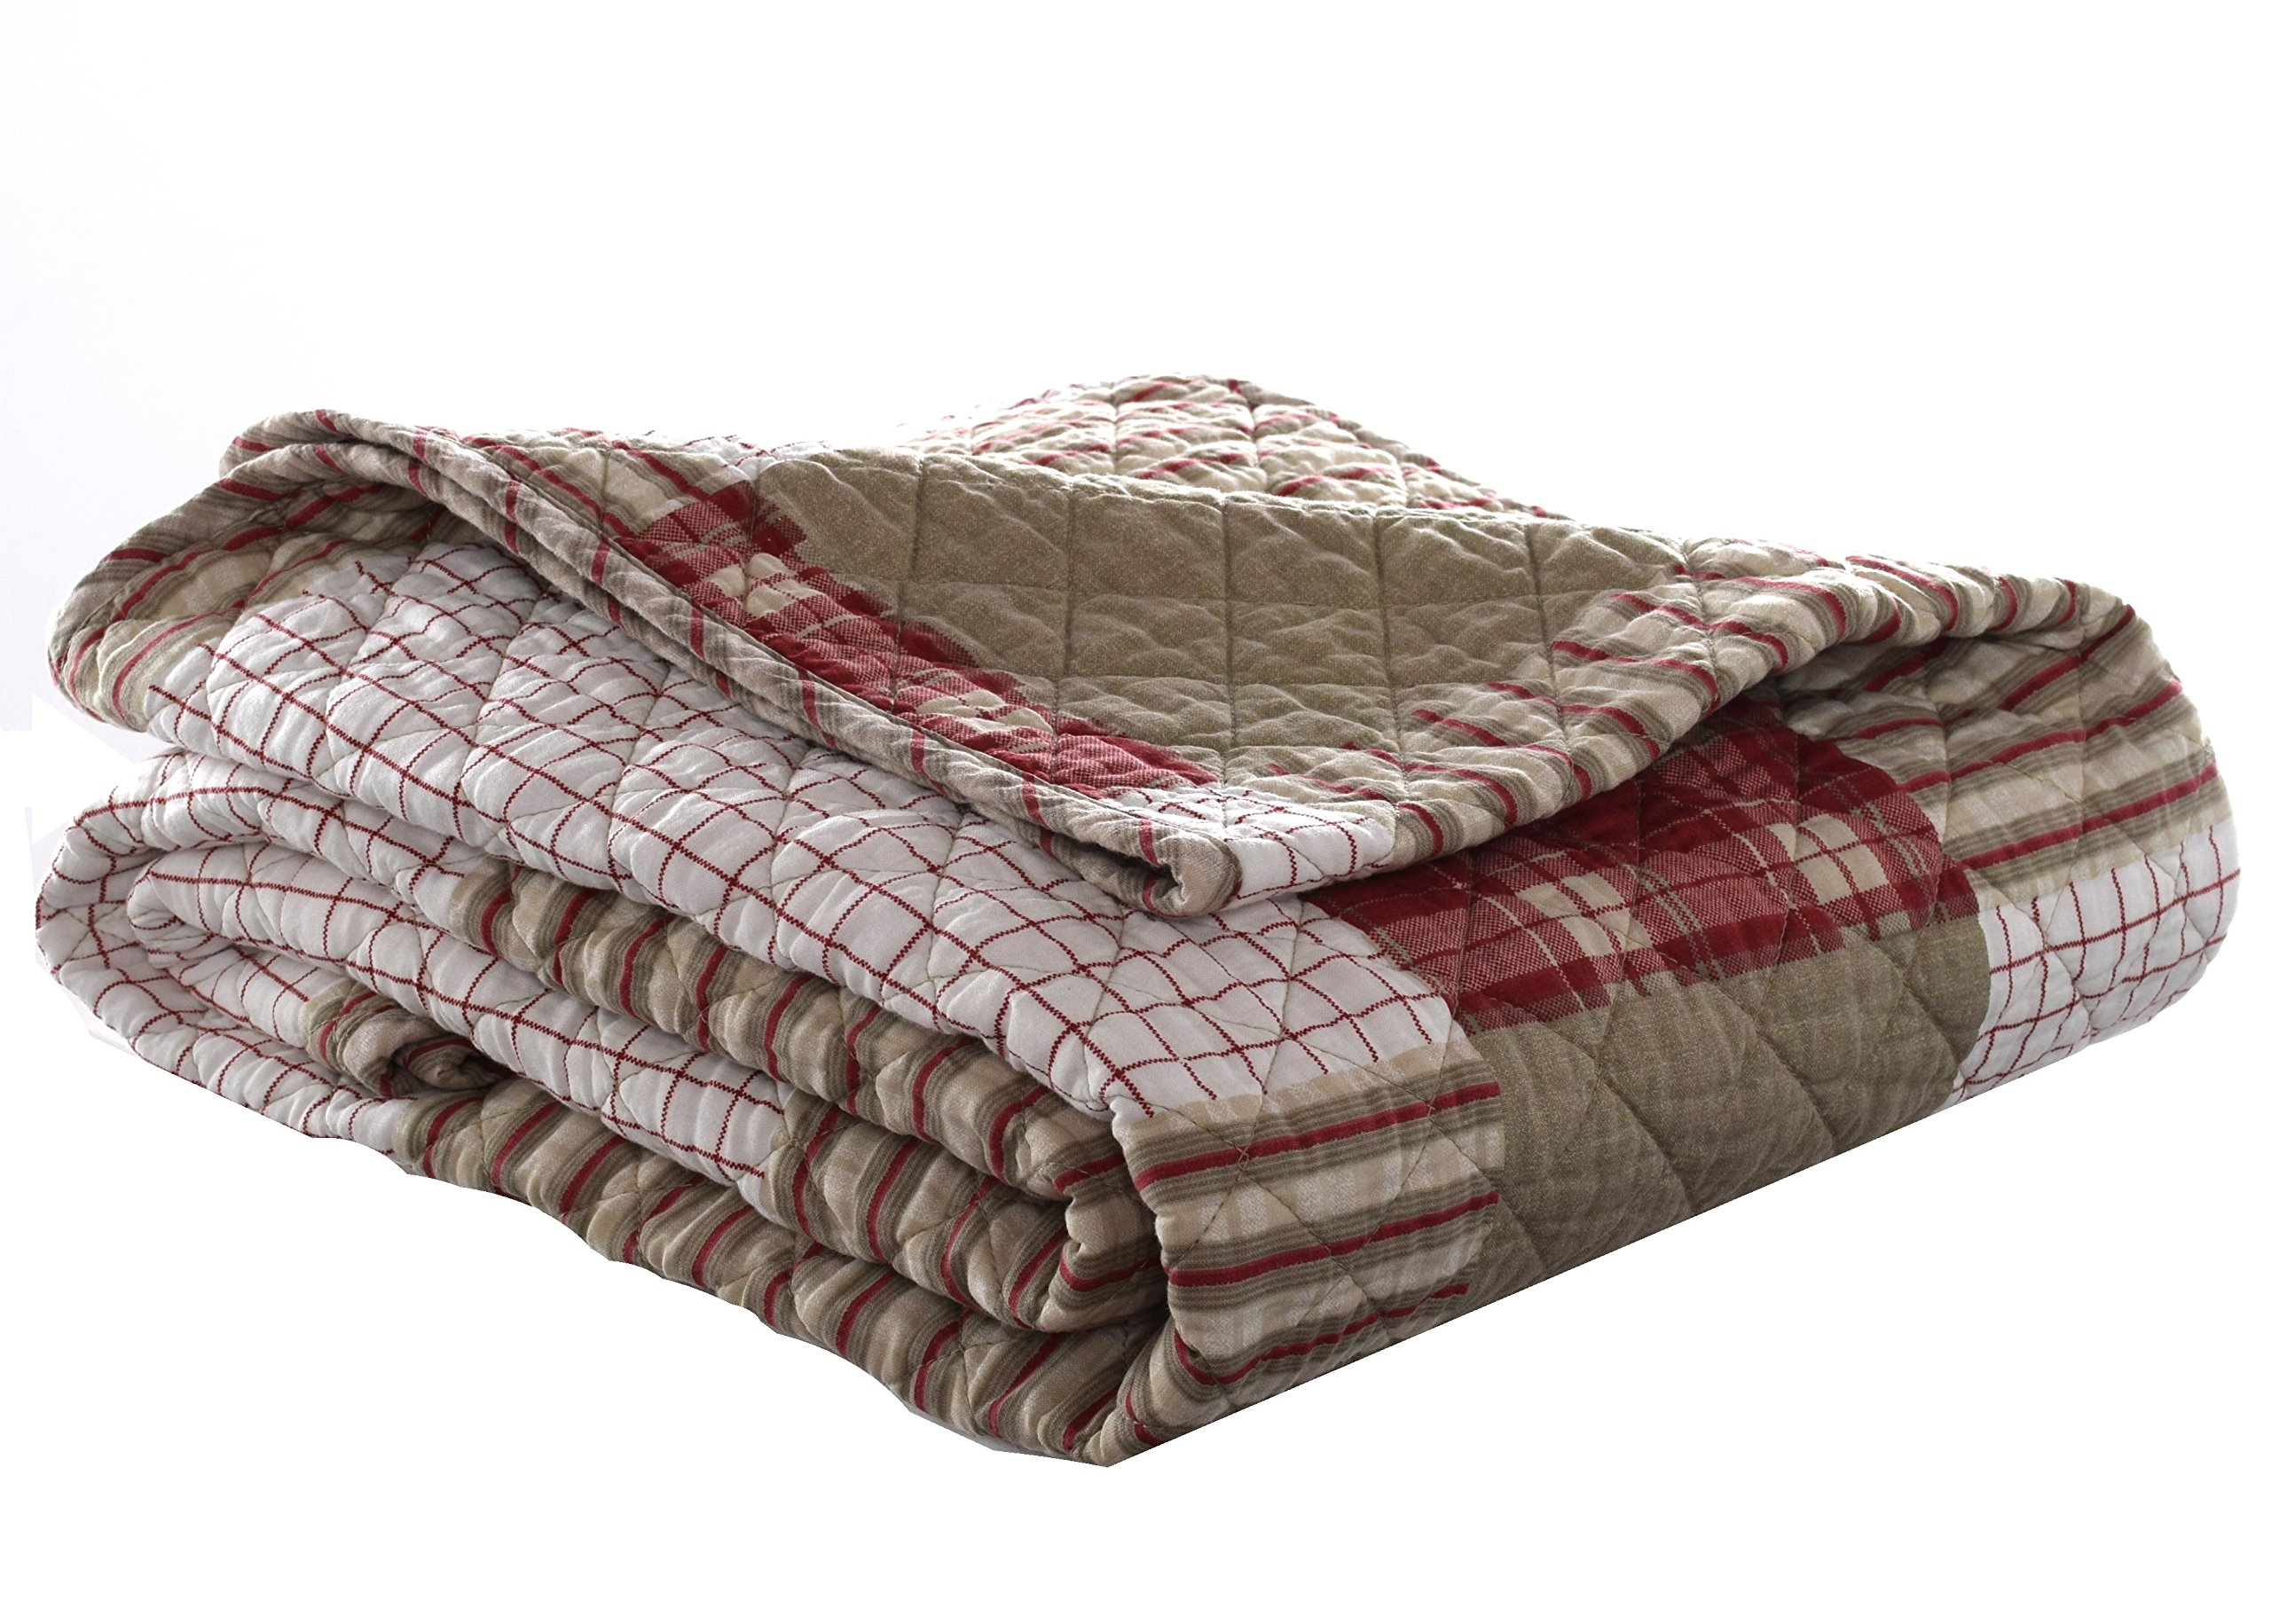 Eddie Bauer Quilted Throw, 50 x 60-Inch, Camino Island - Throws measures 50x60 Throws is 100-percent cotton quilted Throws is reversible - blankets-throws, bedroom-sheets-comforters, bedroom - 9109CjmupcL -